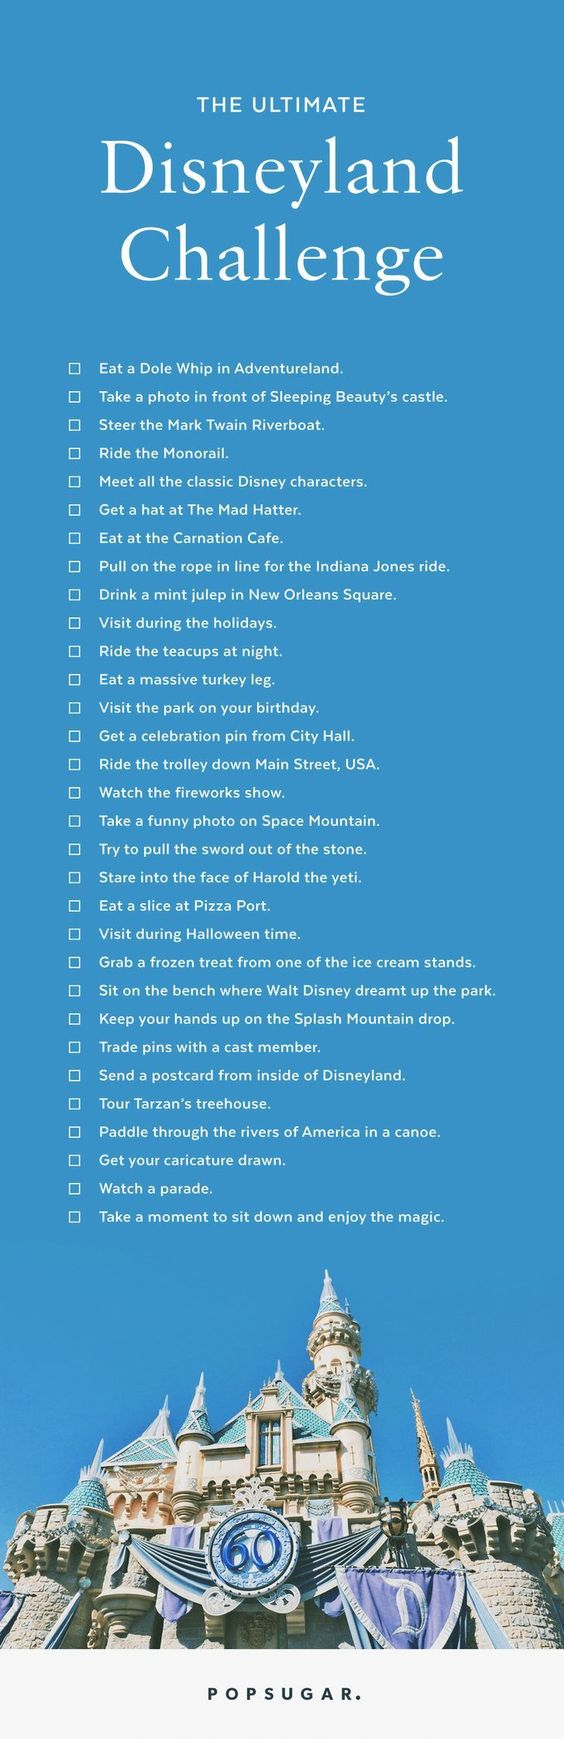 We have created your ultimate Disneyland bucket list so that you can get the most out of your trip to the most magical place on earth. Here are the can't-miss acitivities that are very necessary to check off your list.